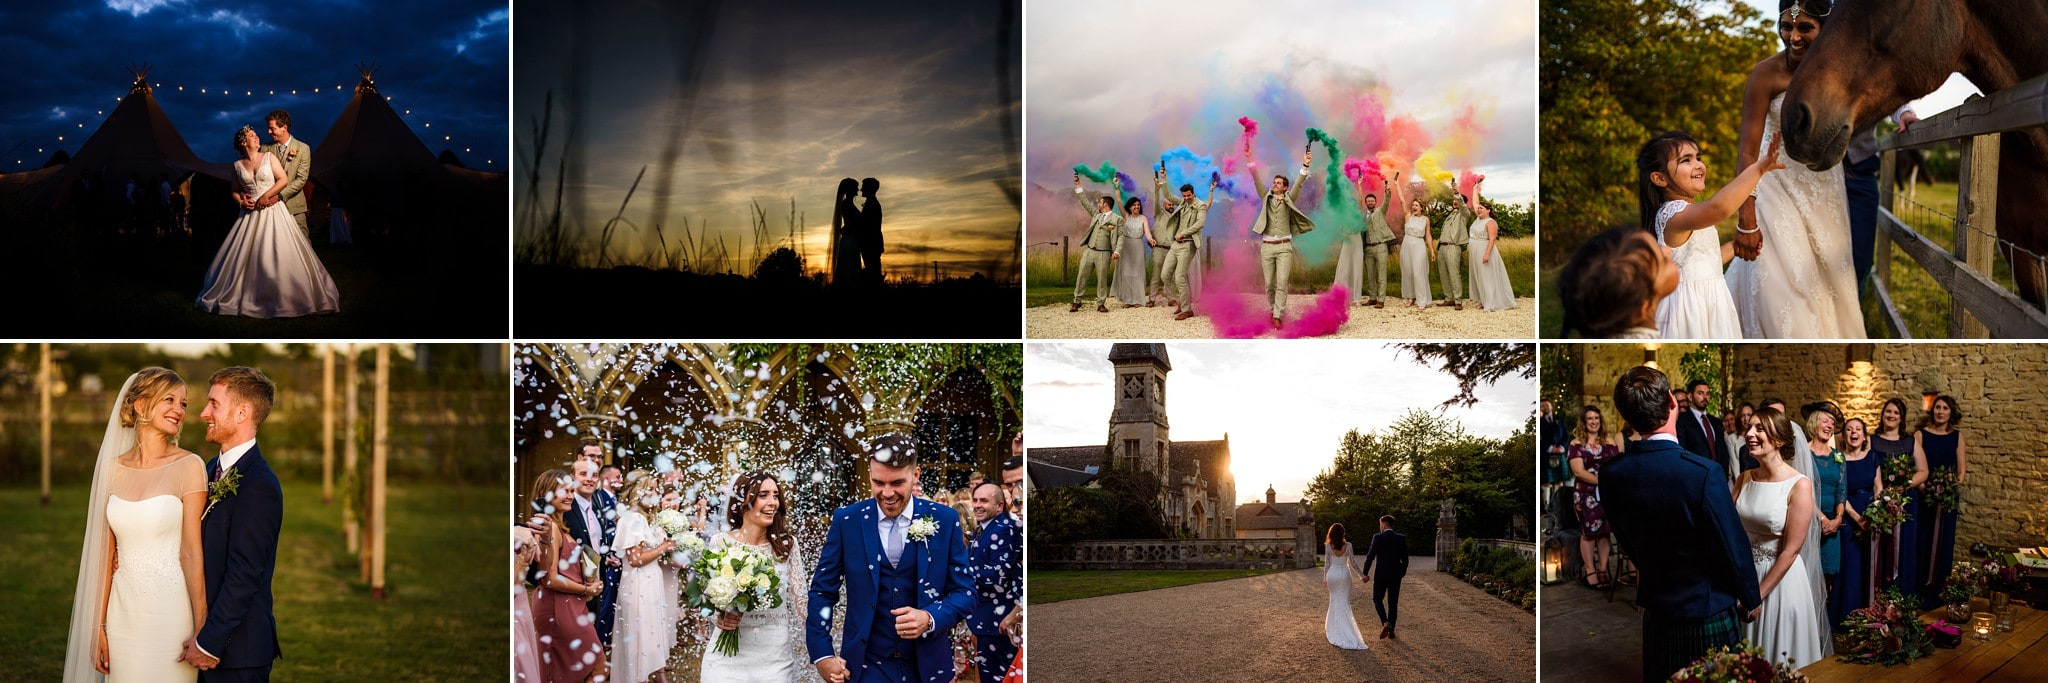 Cotswolds wedding photography banner images